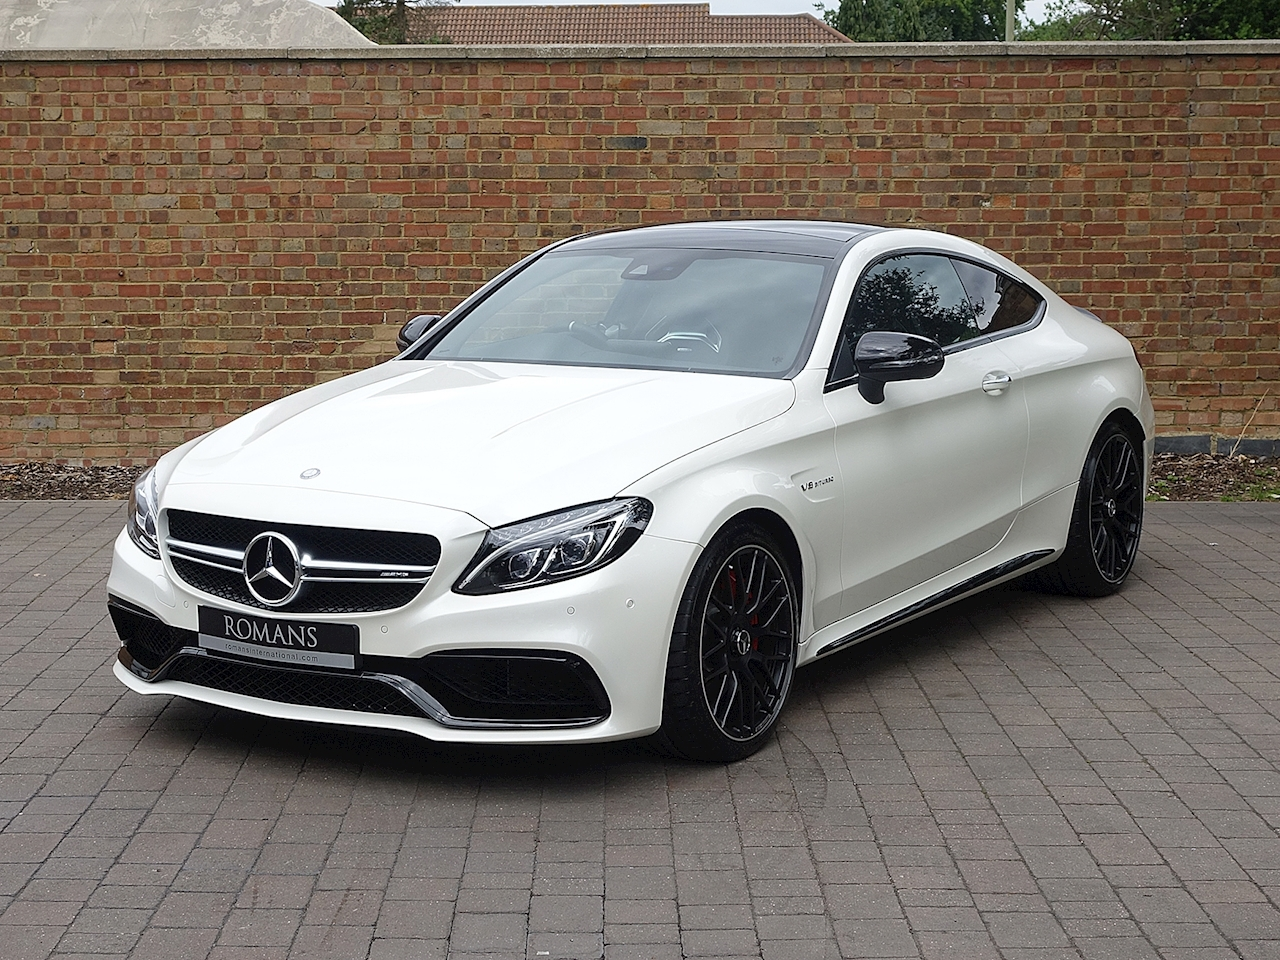 2016 used mercedes benz c63 s amg coupe diamond white bright. Black Bedroom Furniture Sets. Home Design Ideas